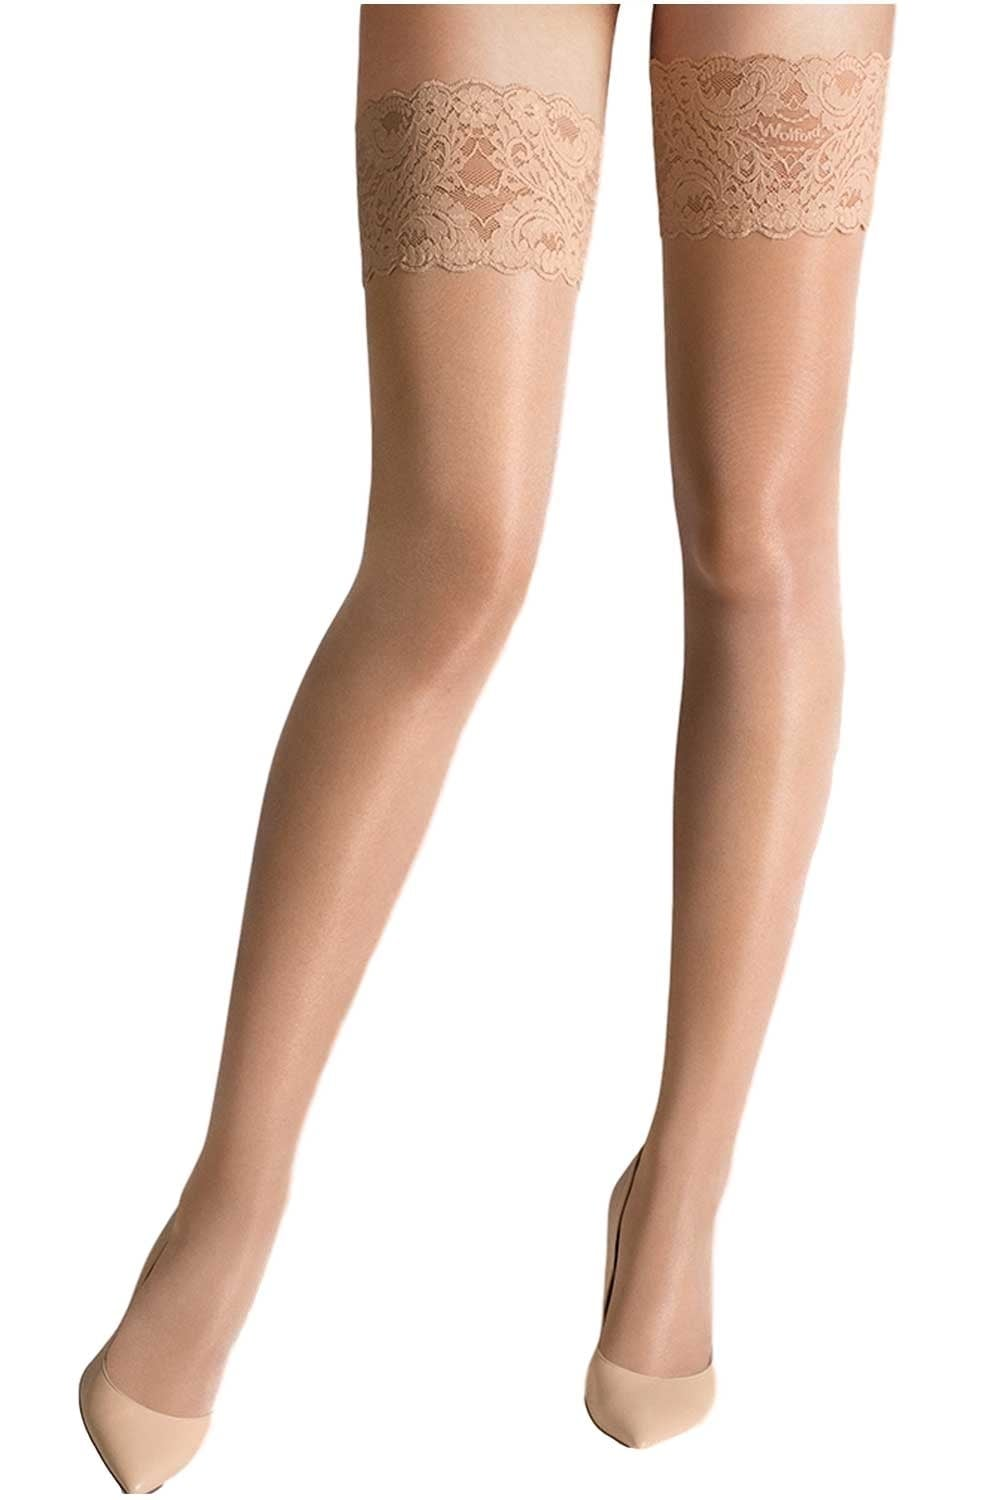 f026c683aa42d Wolford Satin Touch 20 Stay Up